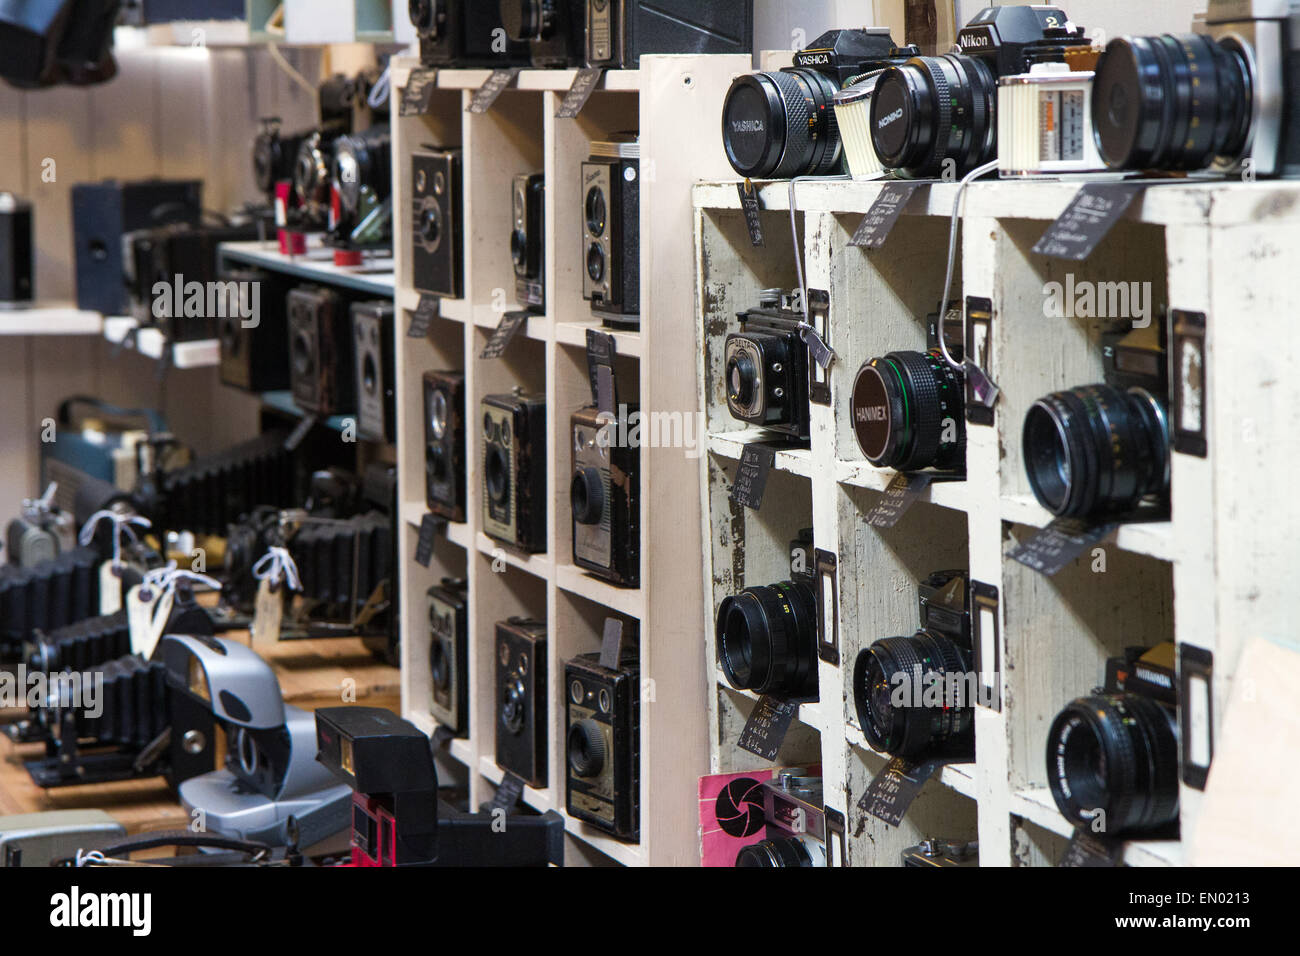 Camera Second Hand Dslr Cameras For Sale second hand cameras on sale at camden market london stock photo london